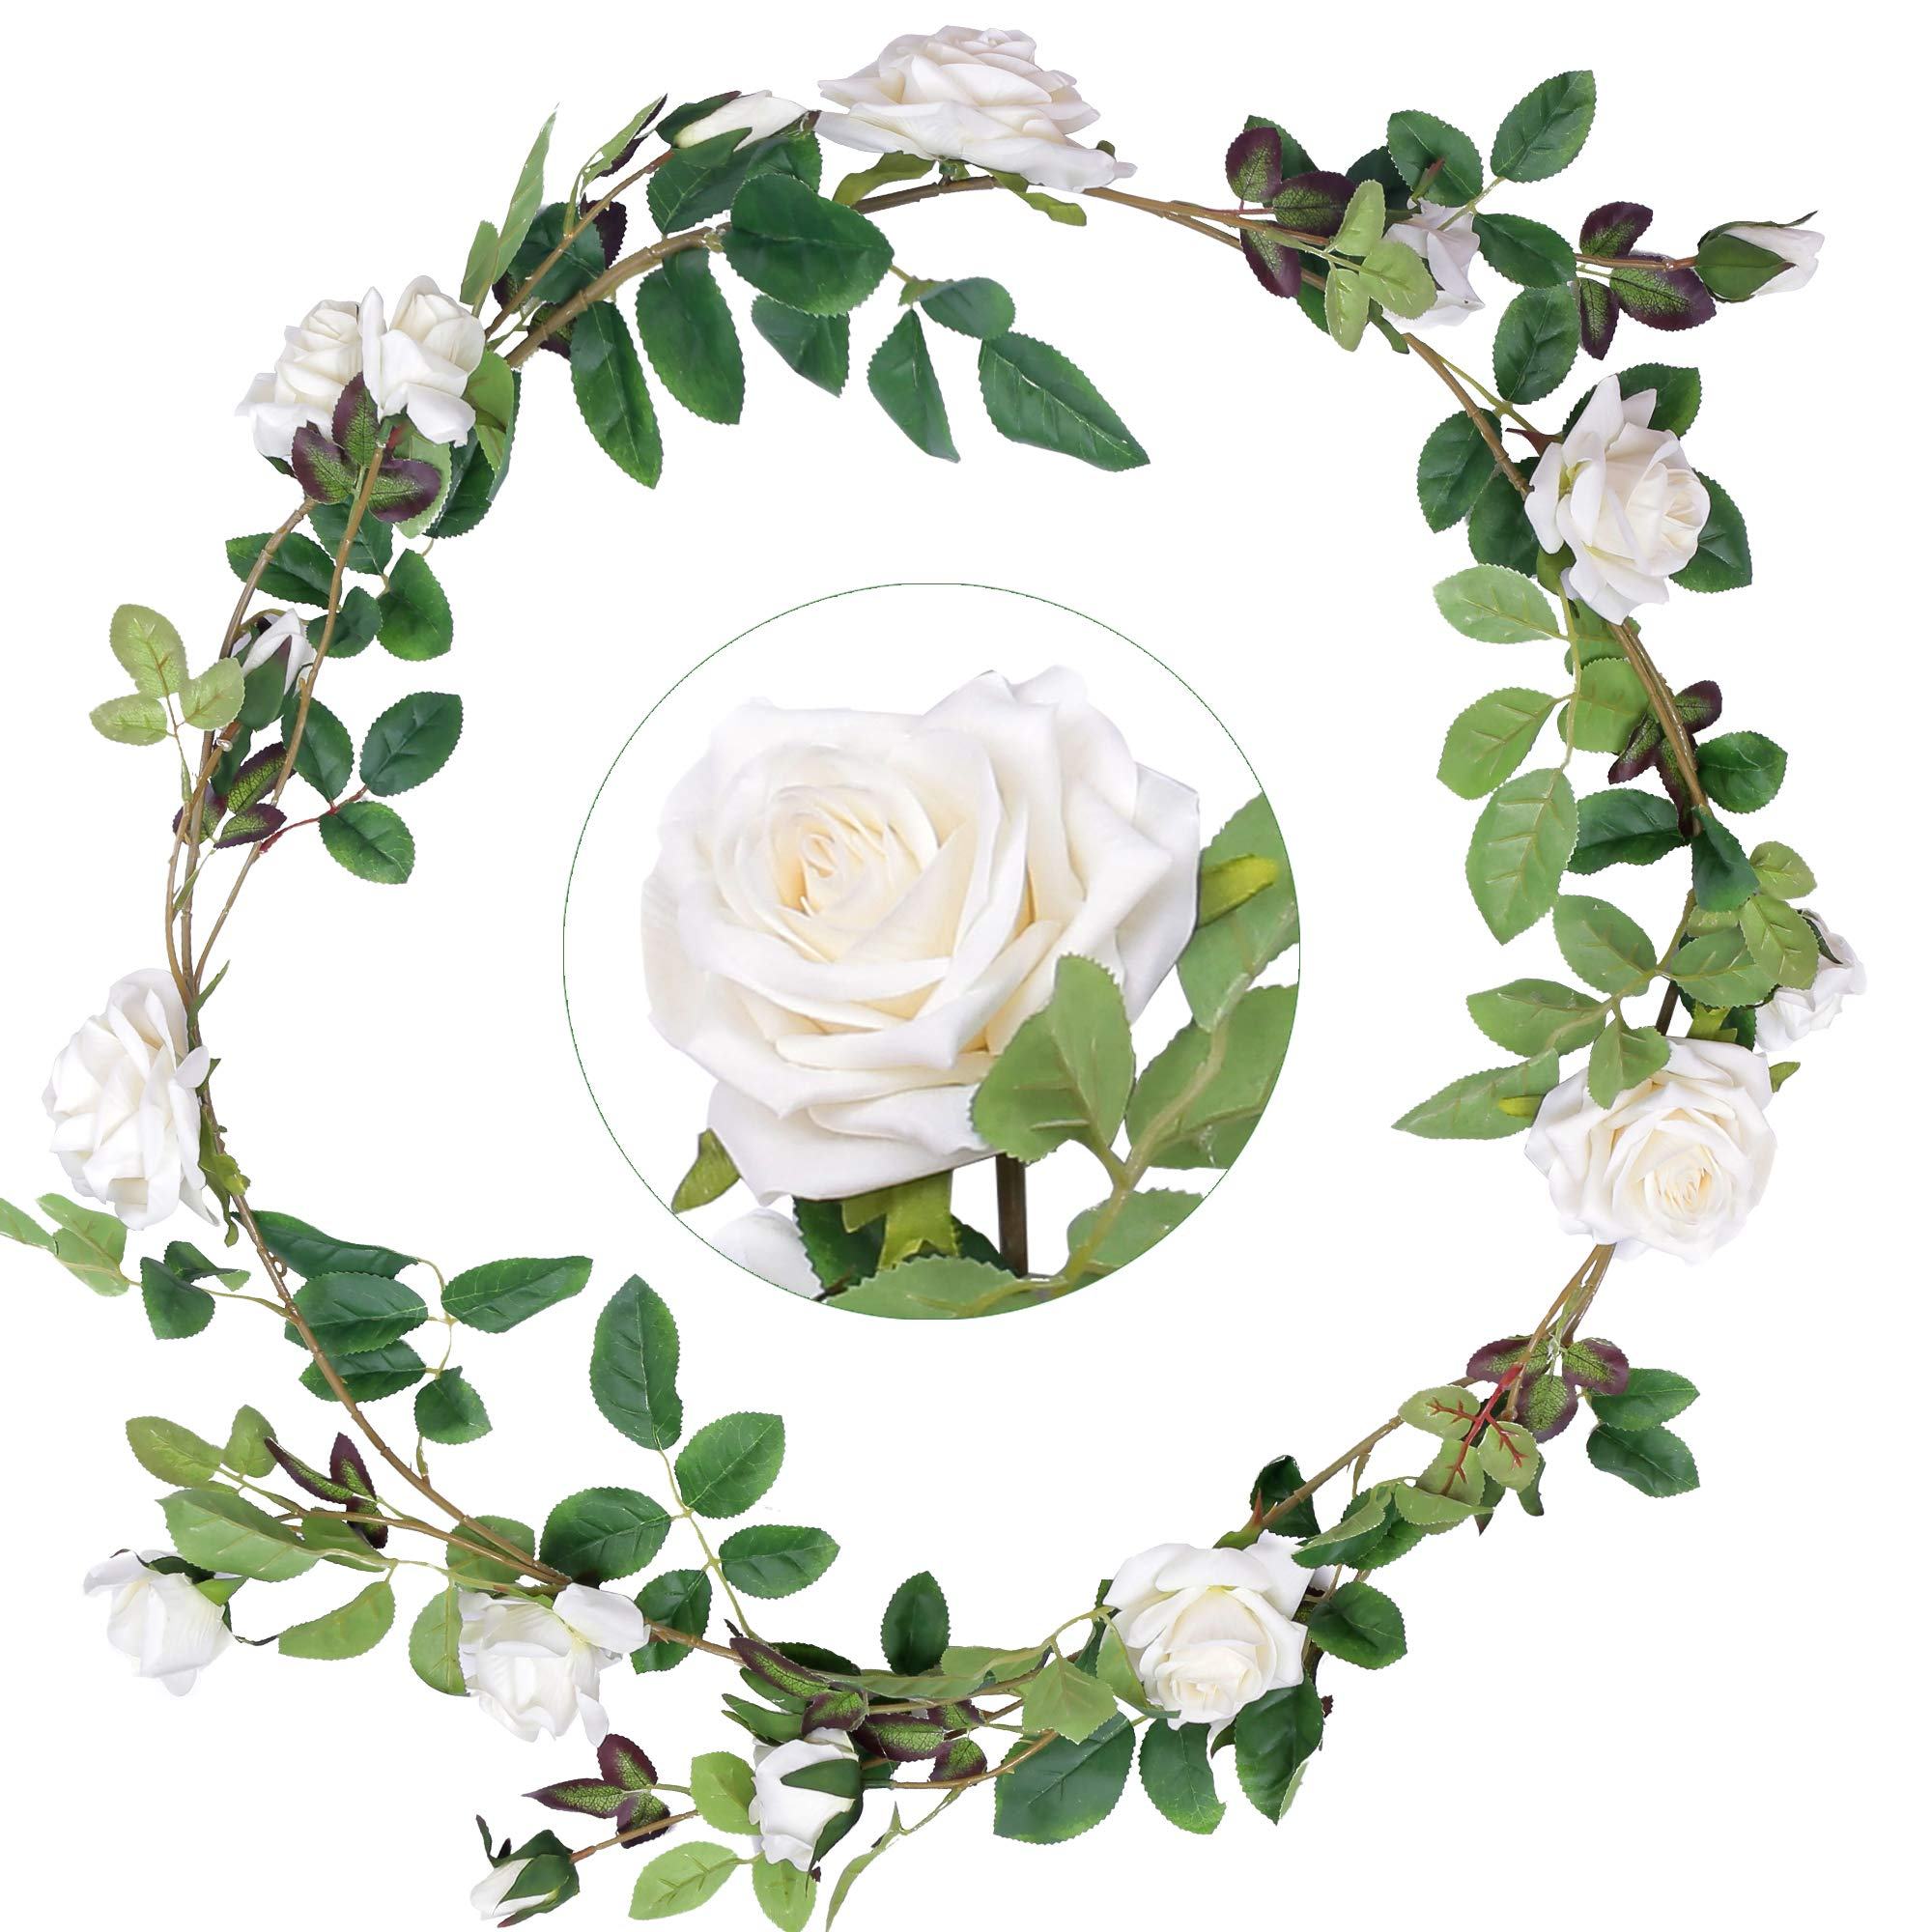 Greentime 5.9 FT Artificial Velvety Rose Vine Fake Silk Rose Flower Garland Faux Hanging Ivy Plants for Wedding Arch Home Garden Party Wall Decor (Cream)